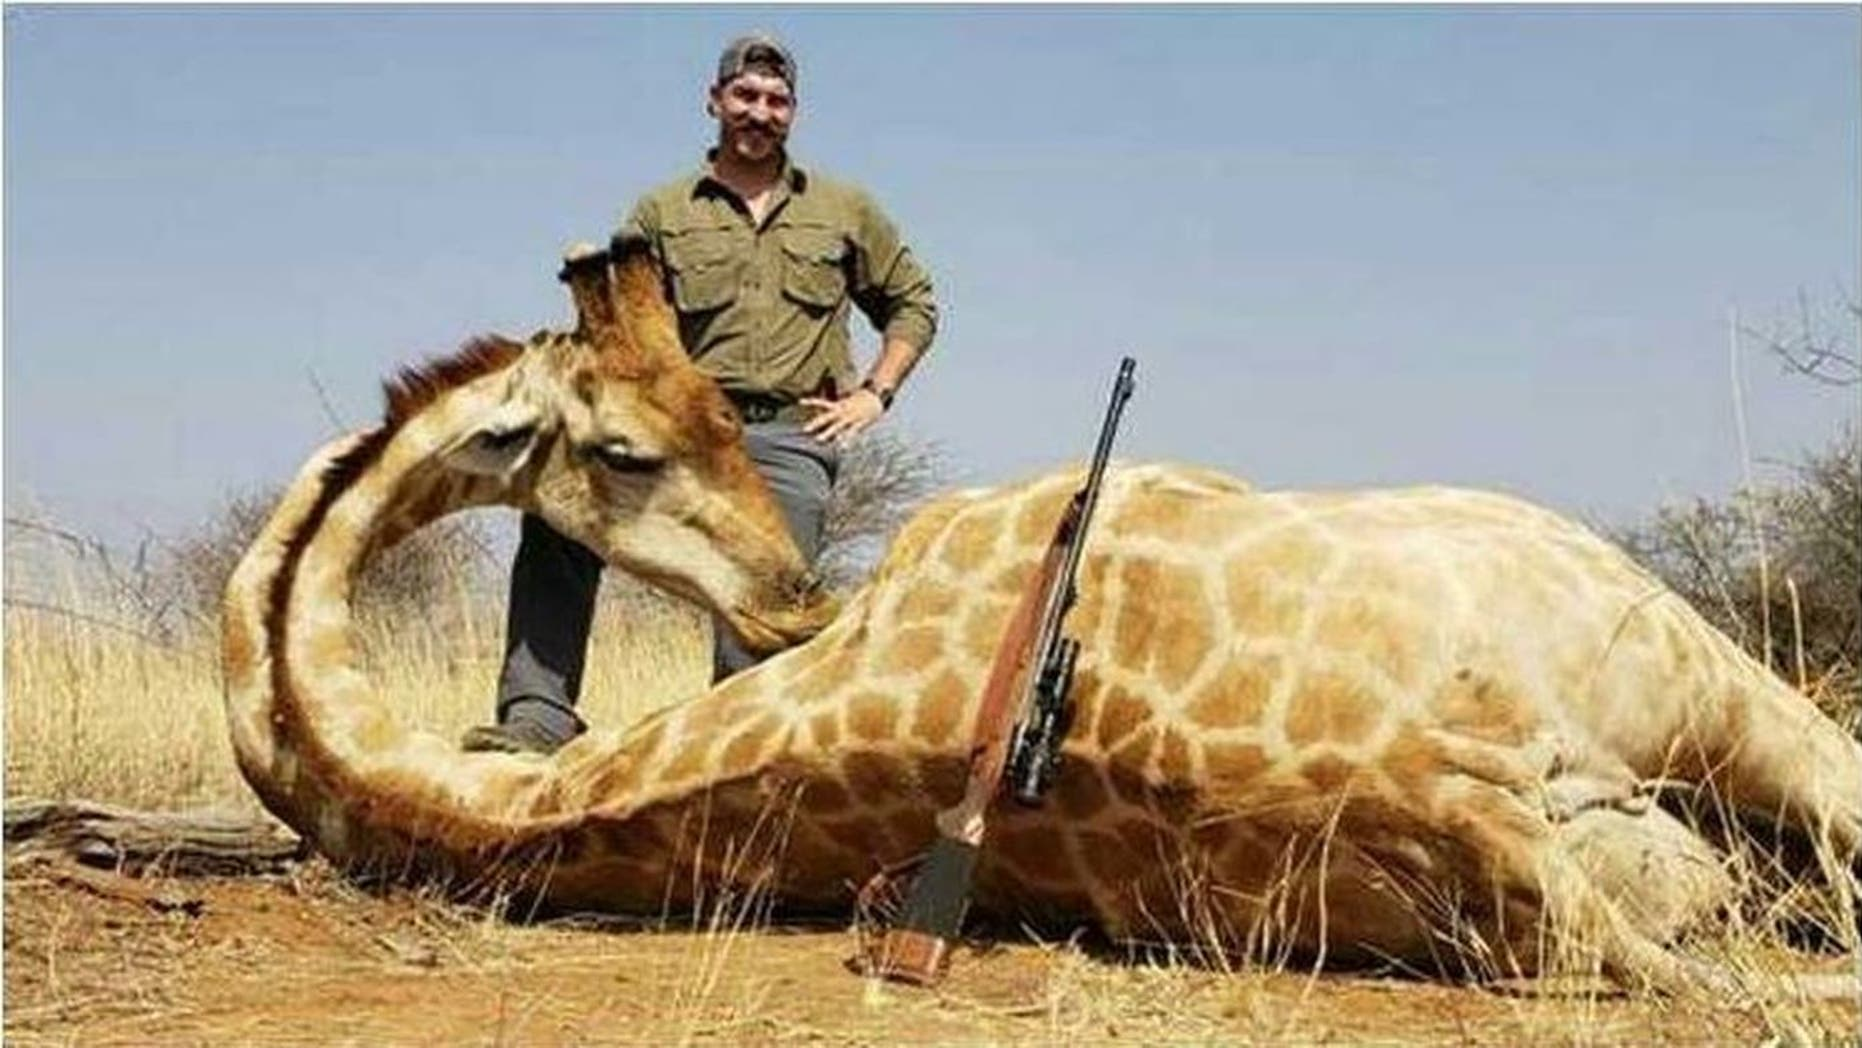 Blake Fischer recently shared photos of his guided hunting trip in Africa, The Idaho Statesman reported.